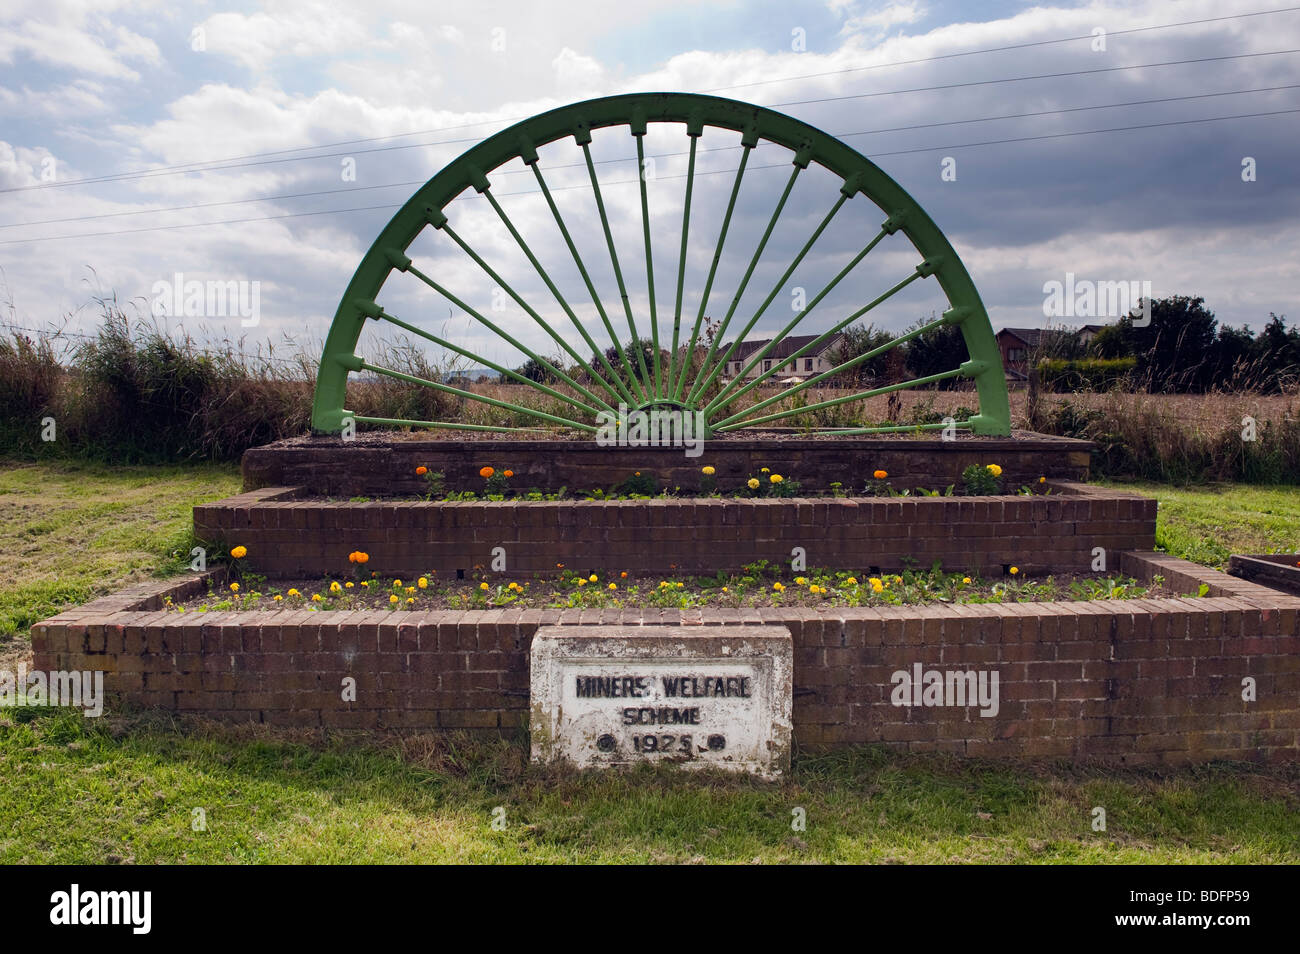 Memorial to the 'Miners Welfare Scheme' dated 1925 near Apperknowle,Derbyshire - Stock Image